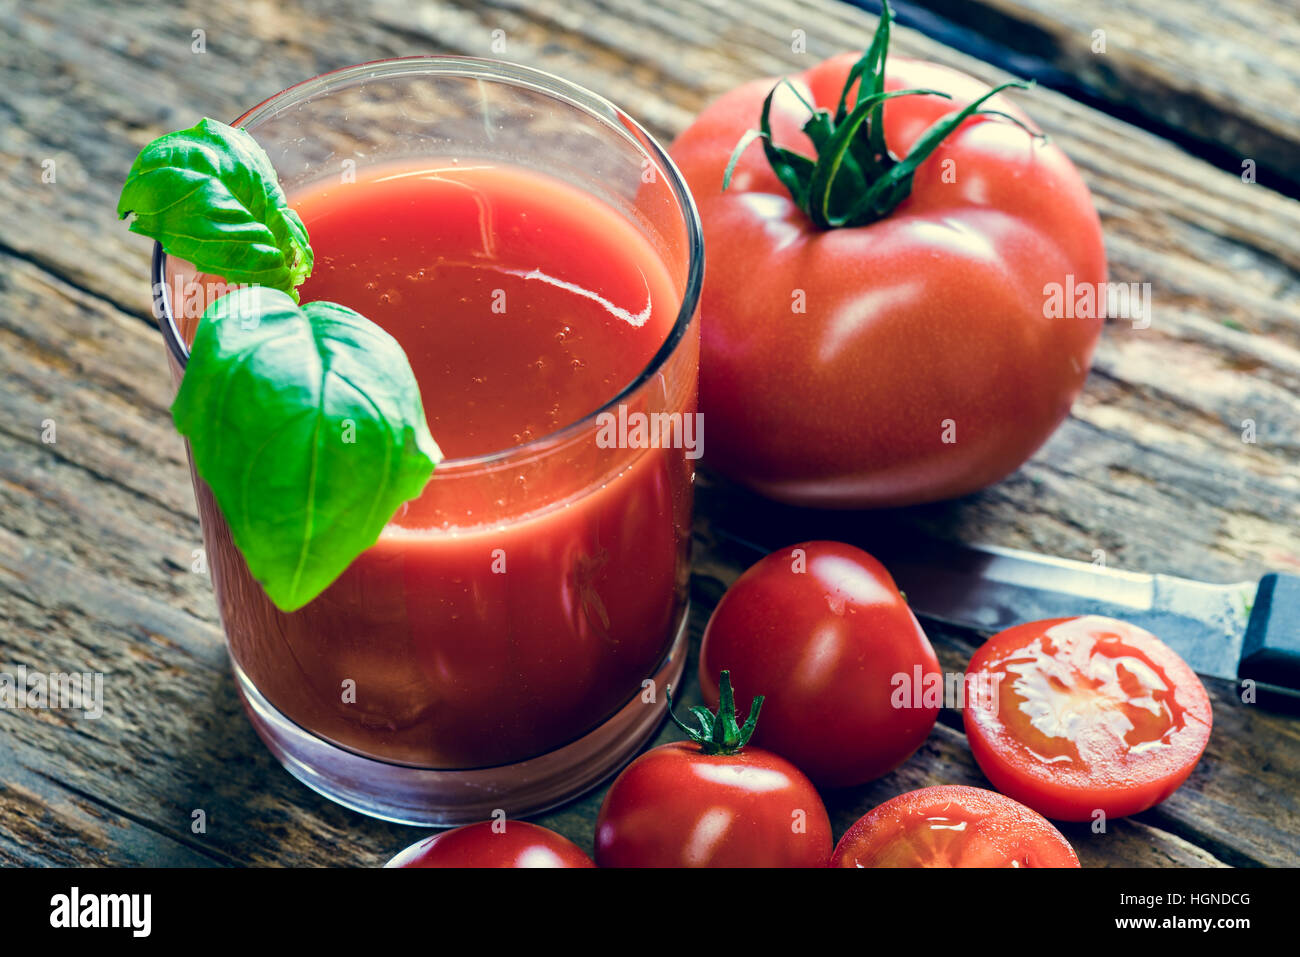 Glass of tomato juice and a few tmatos on wooden table - Stock Image